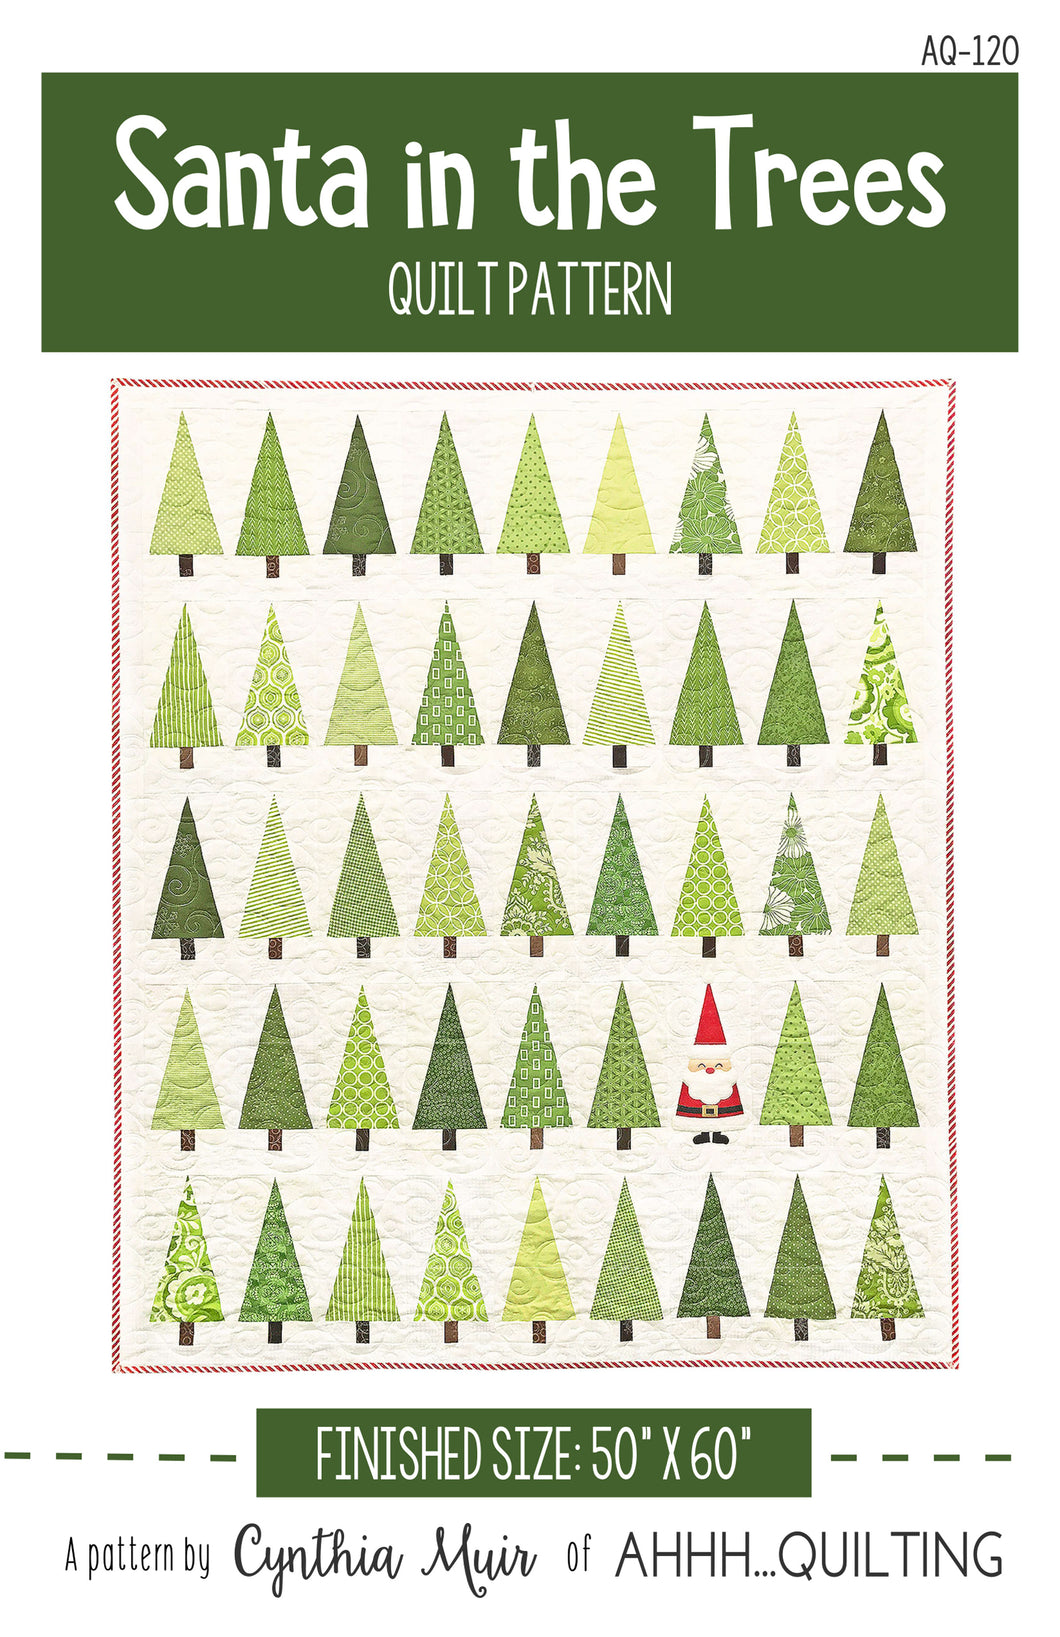 Santa In The Trees Quilt Pattern by Cynthia Muir of Ahhh Quilting